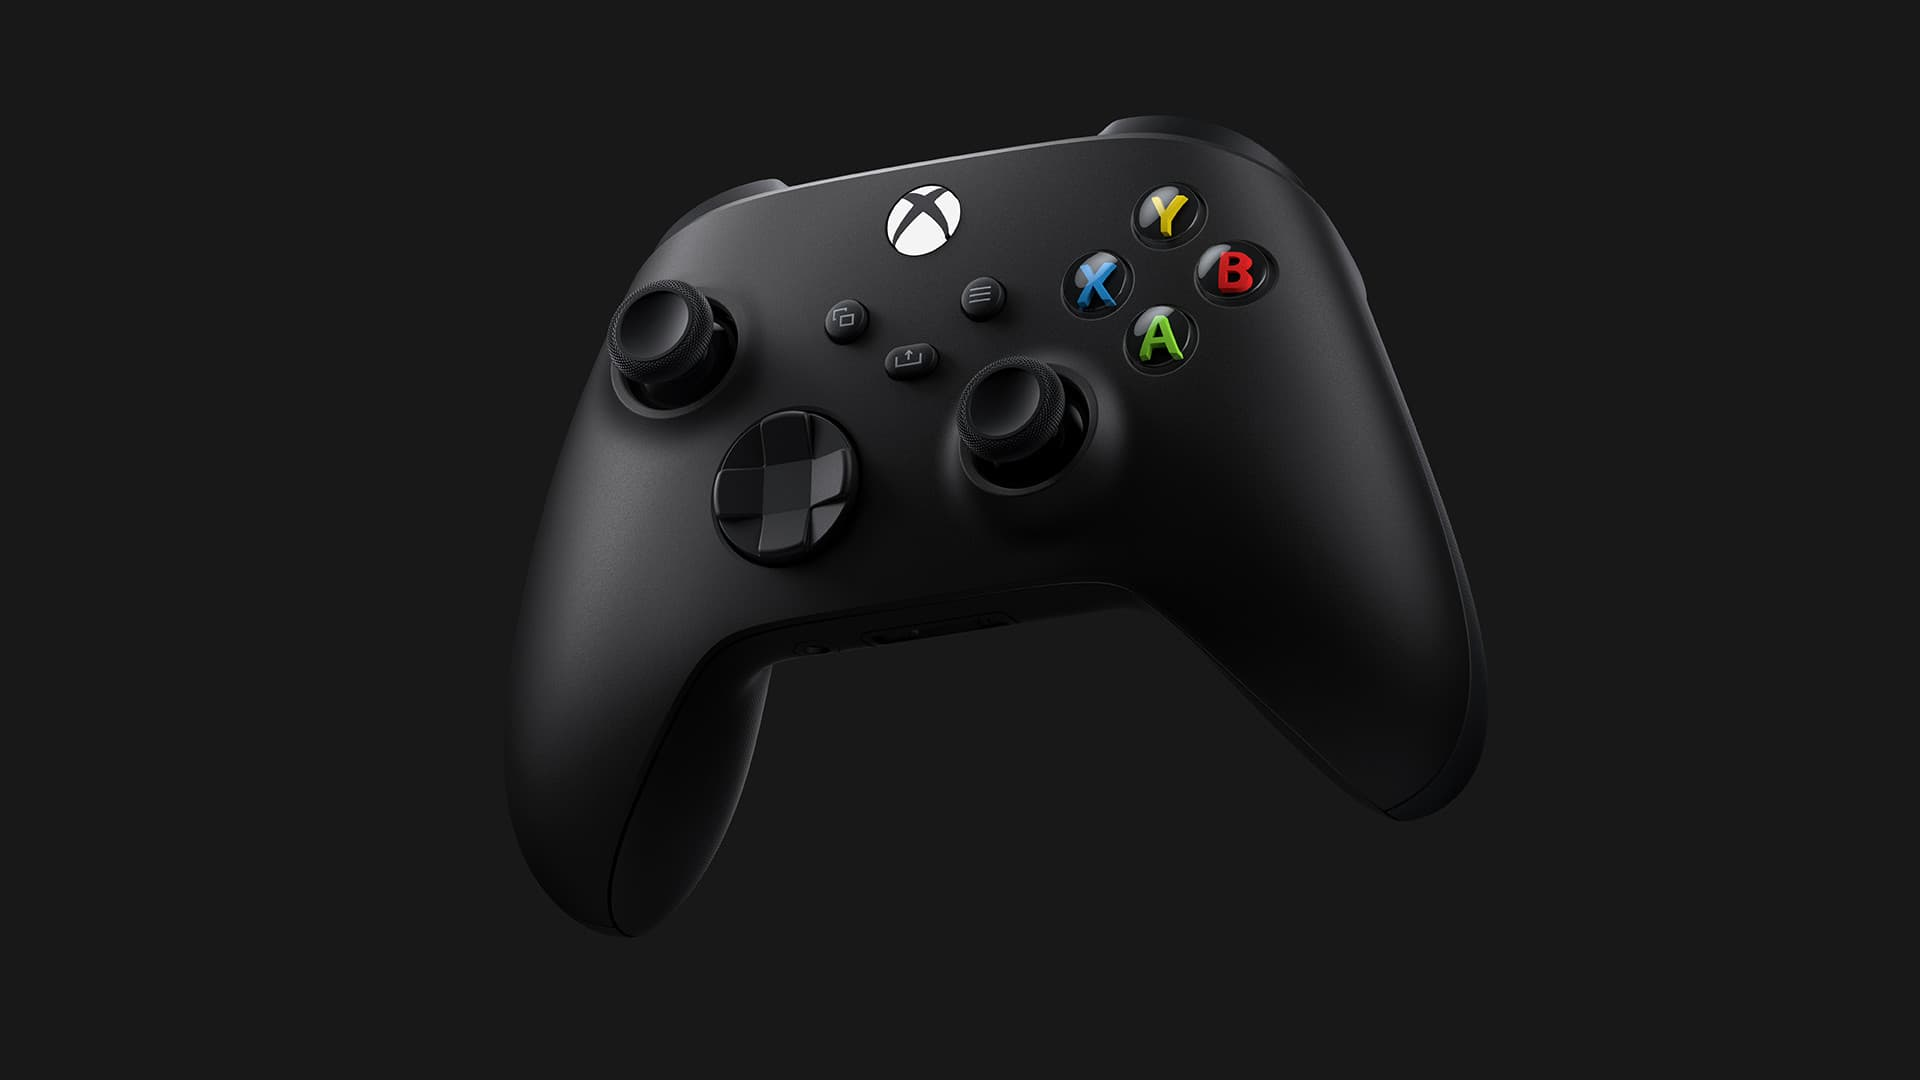 Apple partners with Microsoft to grant Xbox Series X controller support for iOS